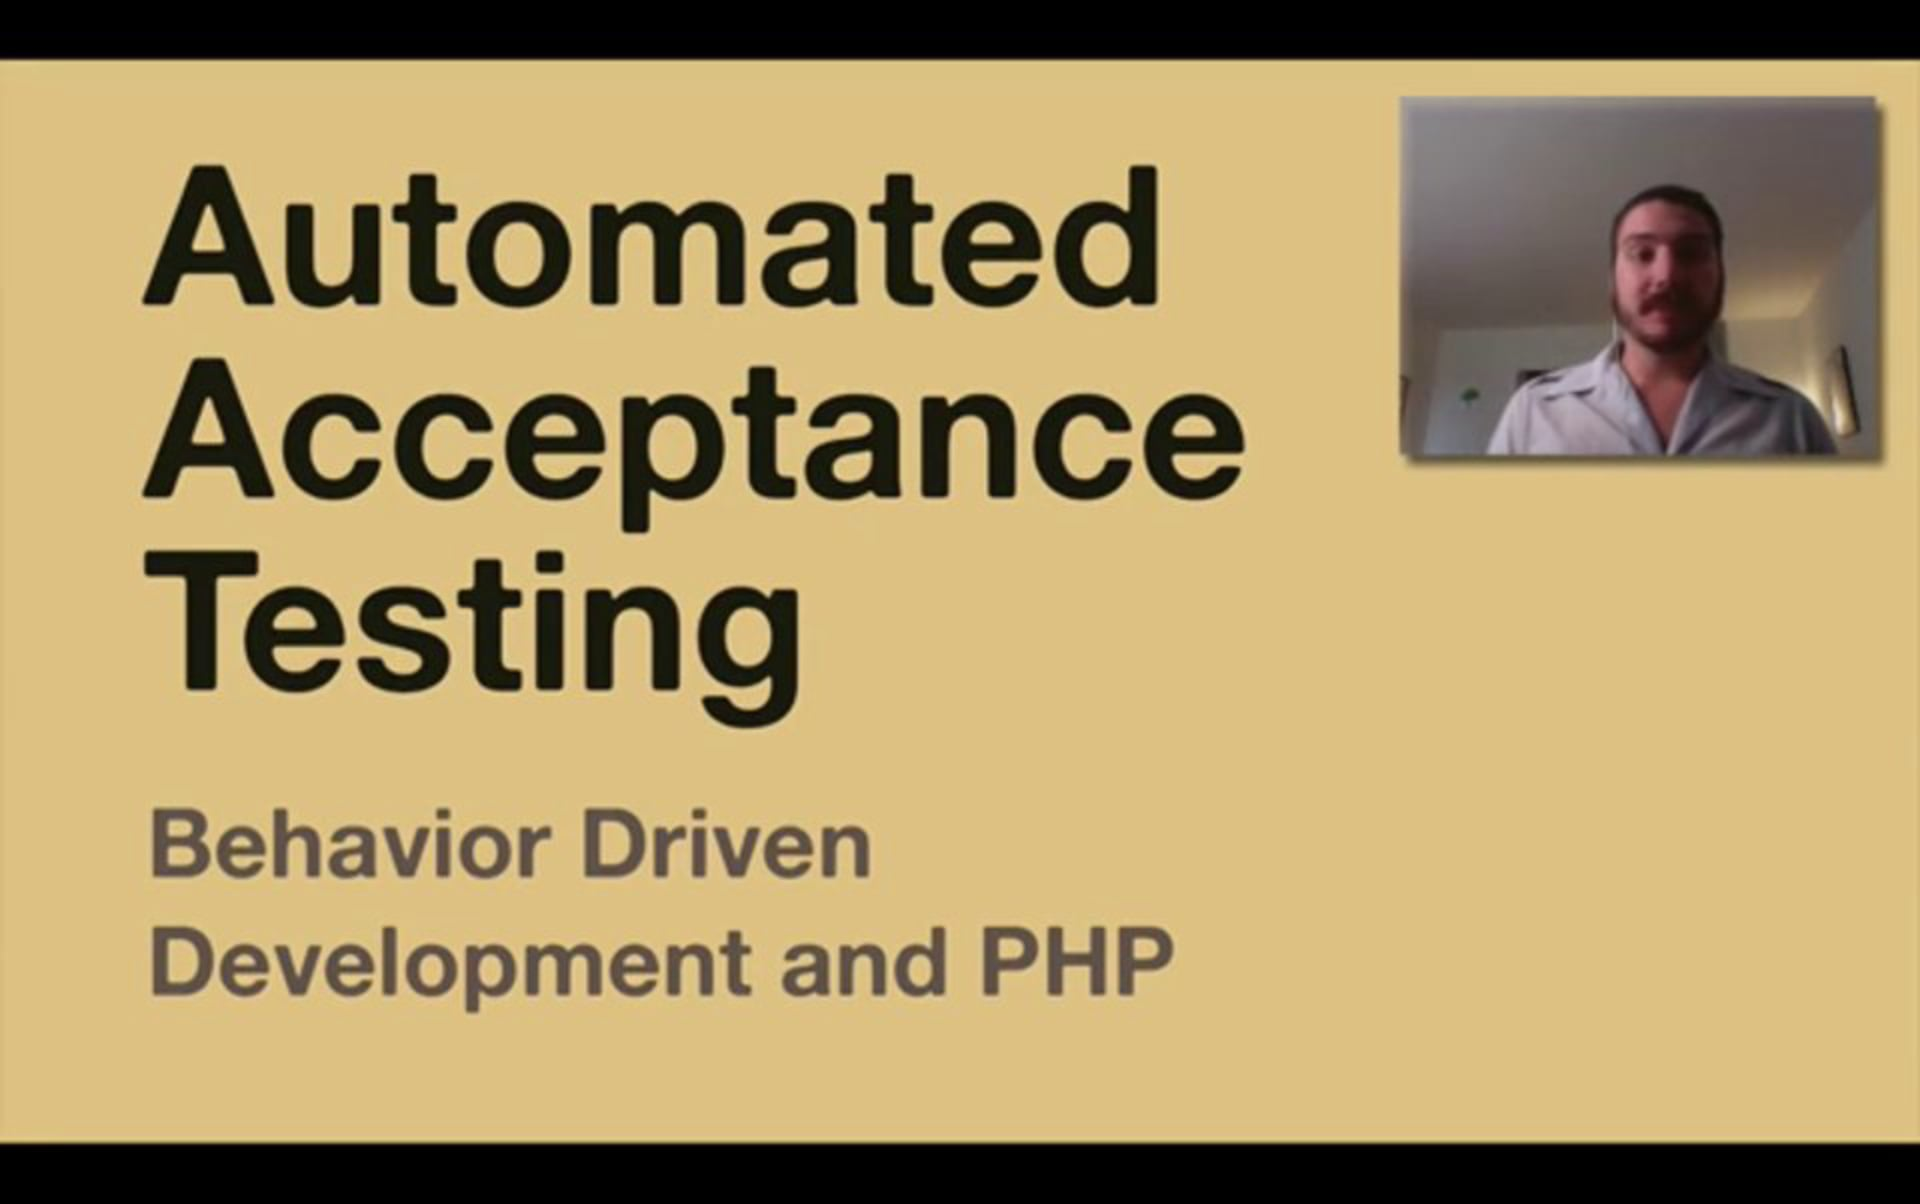 Automated Acceptance Testing: Behavior Driven Development and PHP